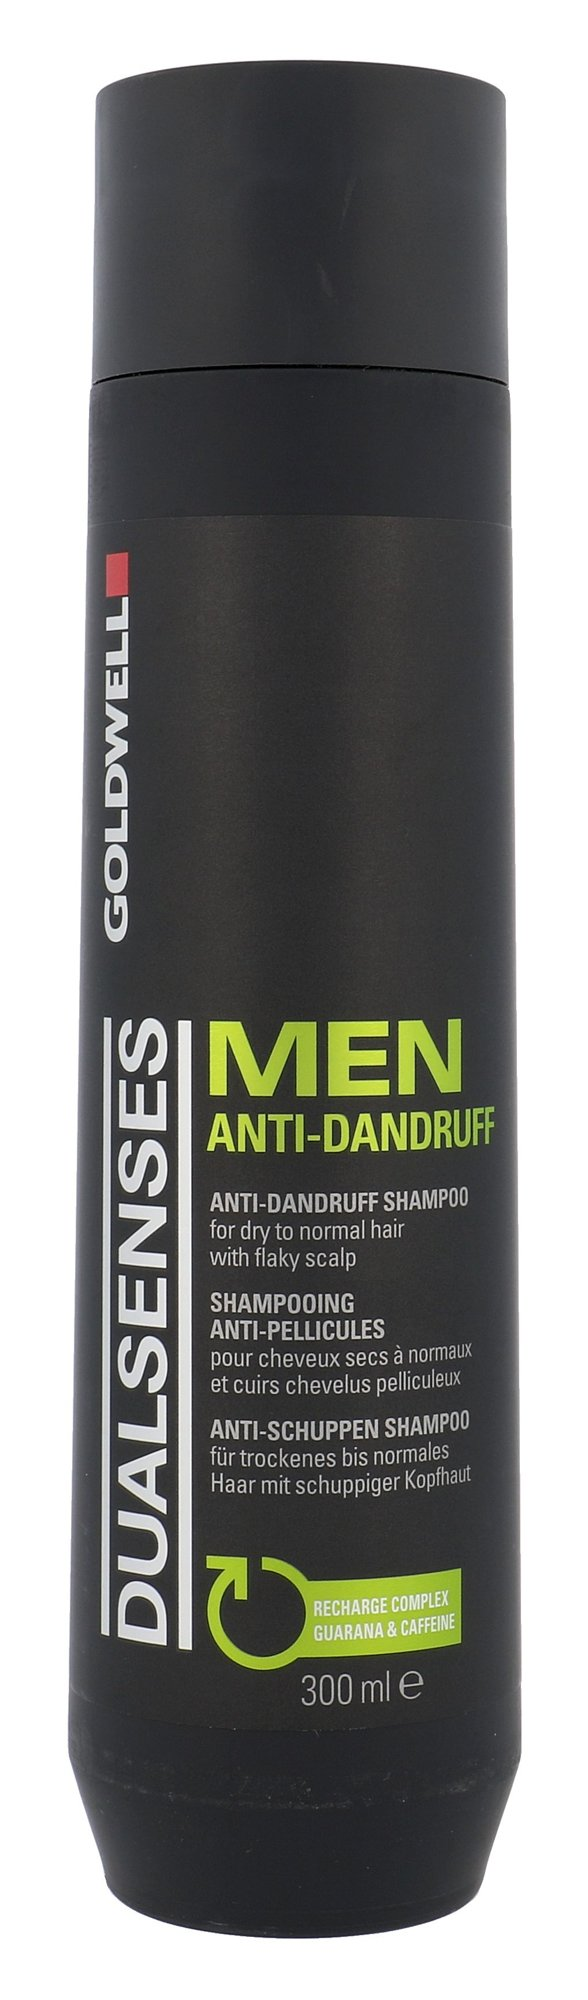 Goldwell Dualsenses For Men Cosmetic 300ml